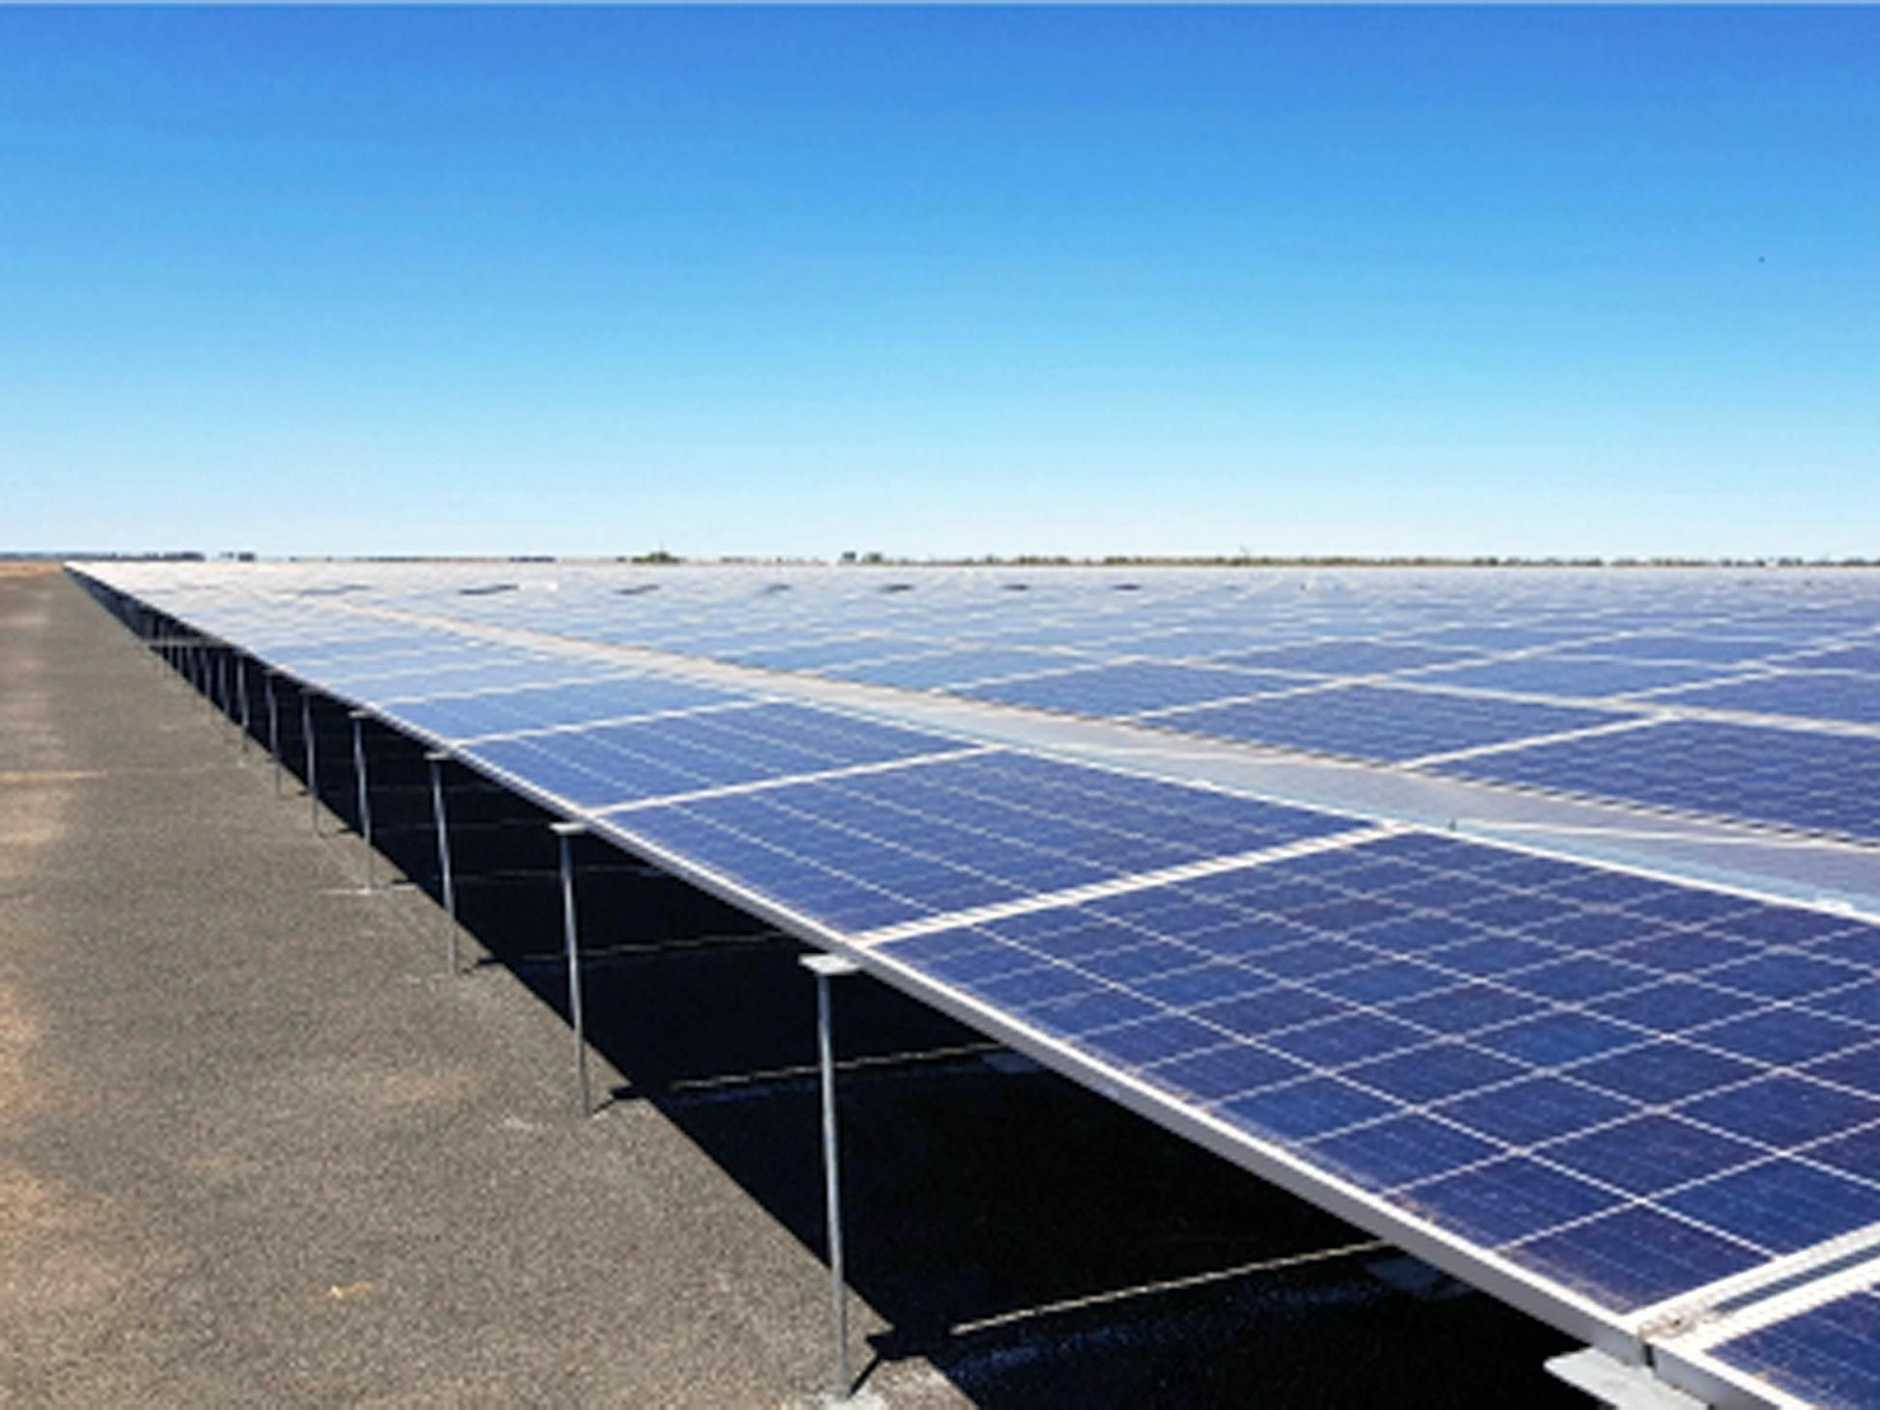 A development application has been lodged with Byron Shire Council for a $6.5 million solar farm at Tyagarah.